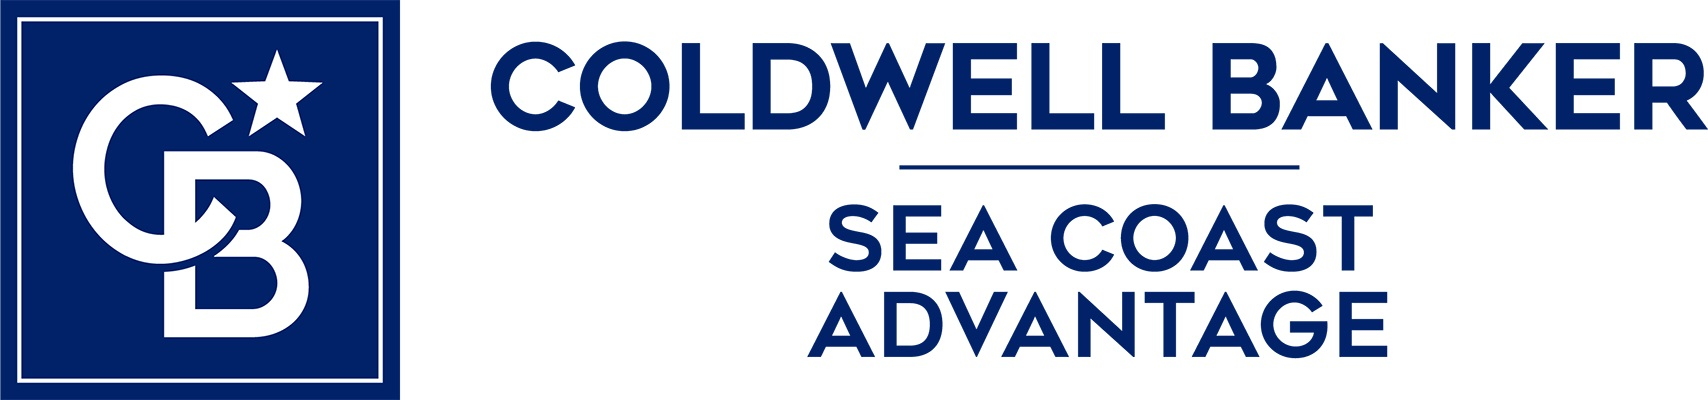 Nora Ruehle - Coldwell Banker Sea Coast Advantage Realty Logo